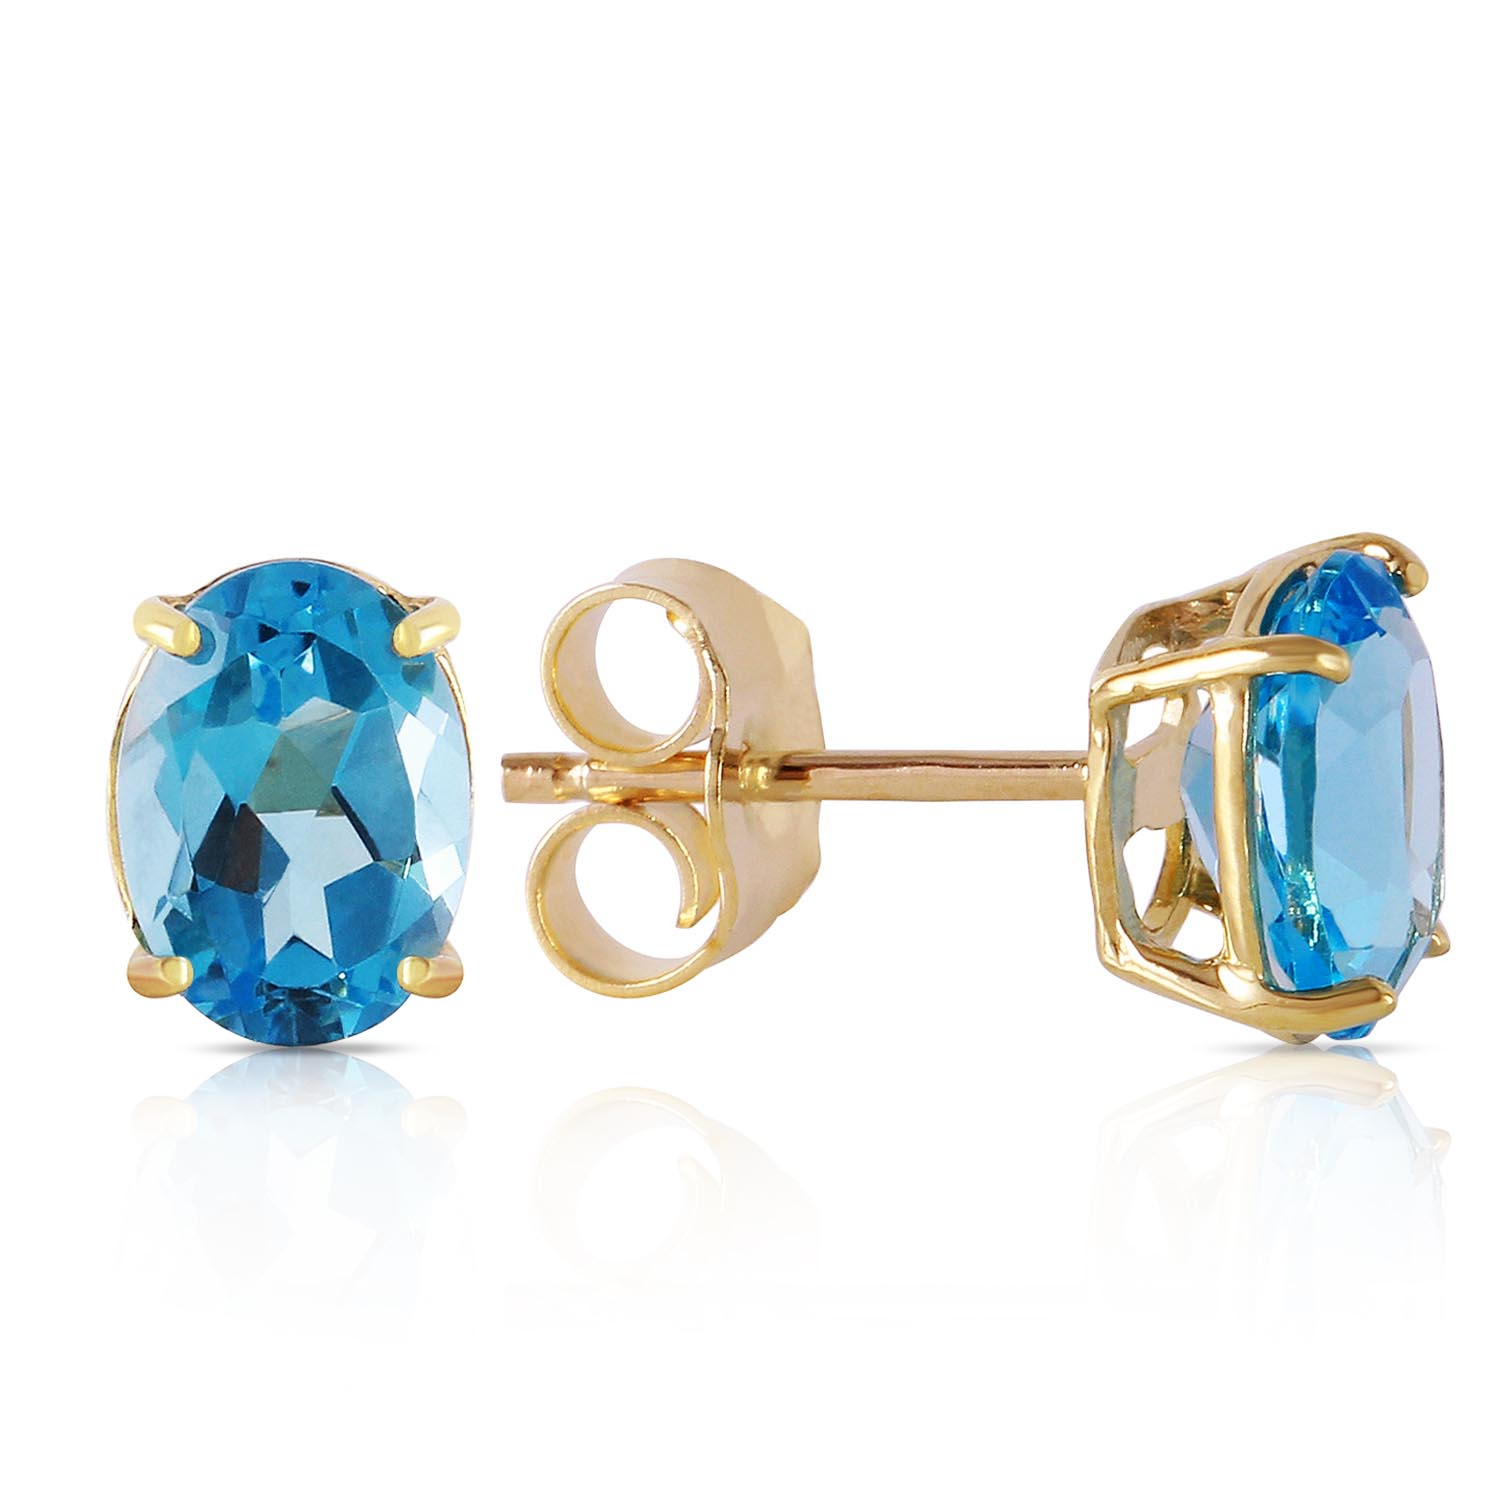 Blue Topaz Stud Earrings 1.8ctw in 9ct Gold